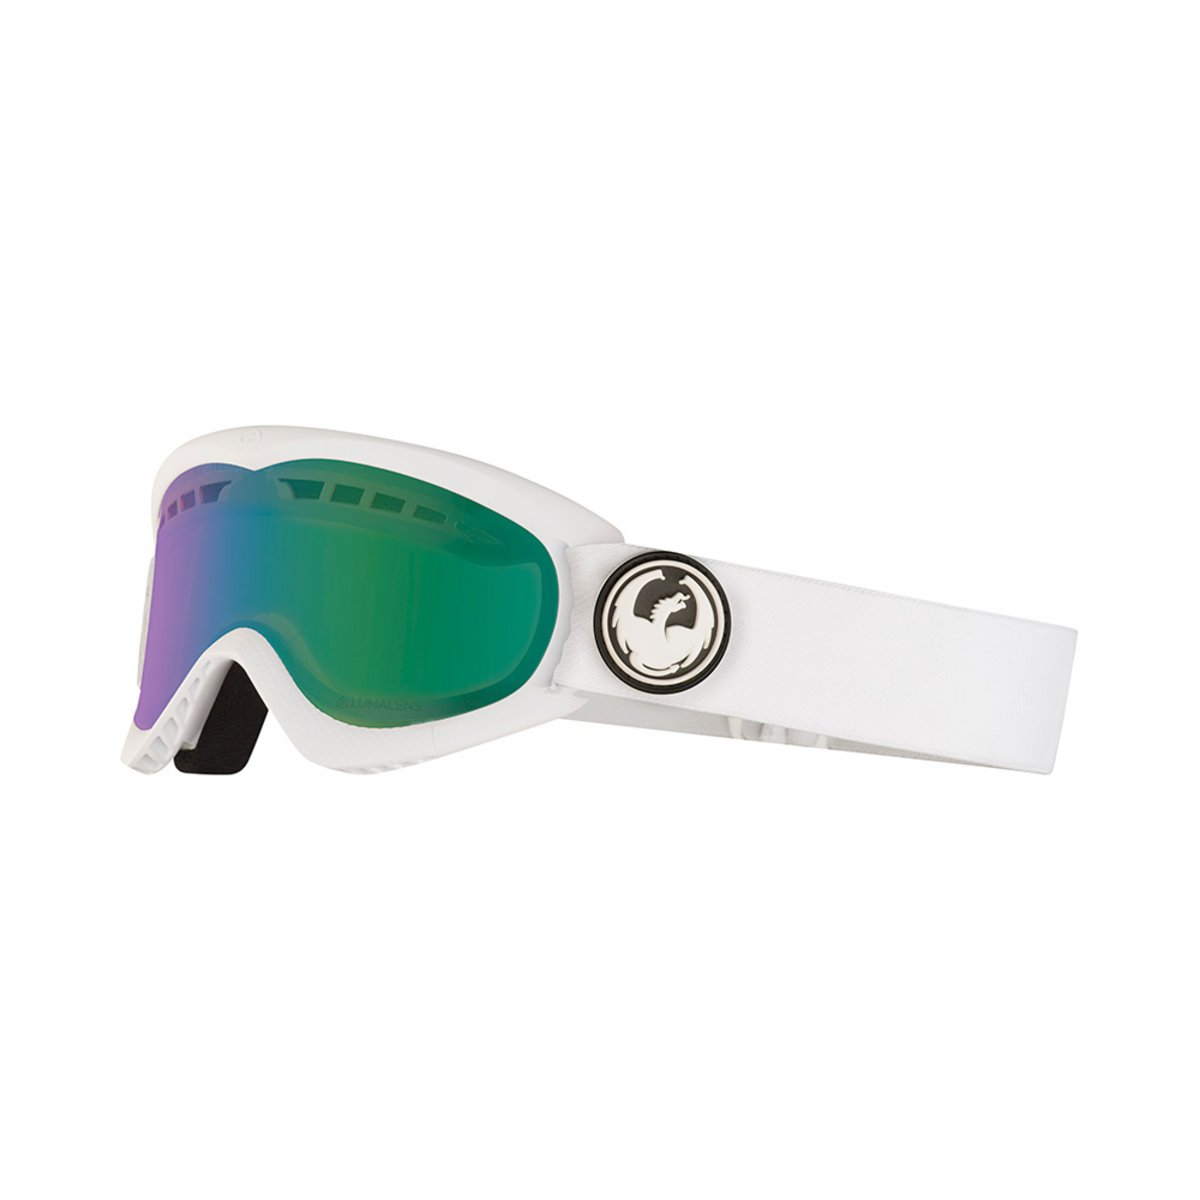 Dragon DXs White / Lumalens Green Ionized + Lumalens Yellow Goggles 2019 / 2020 0